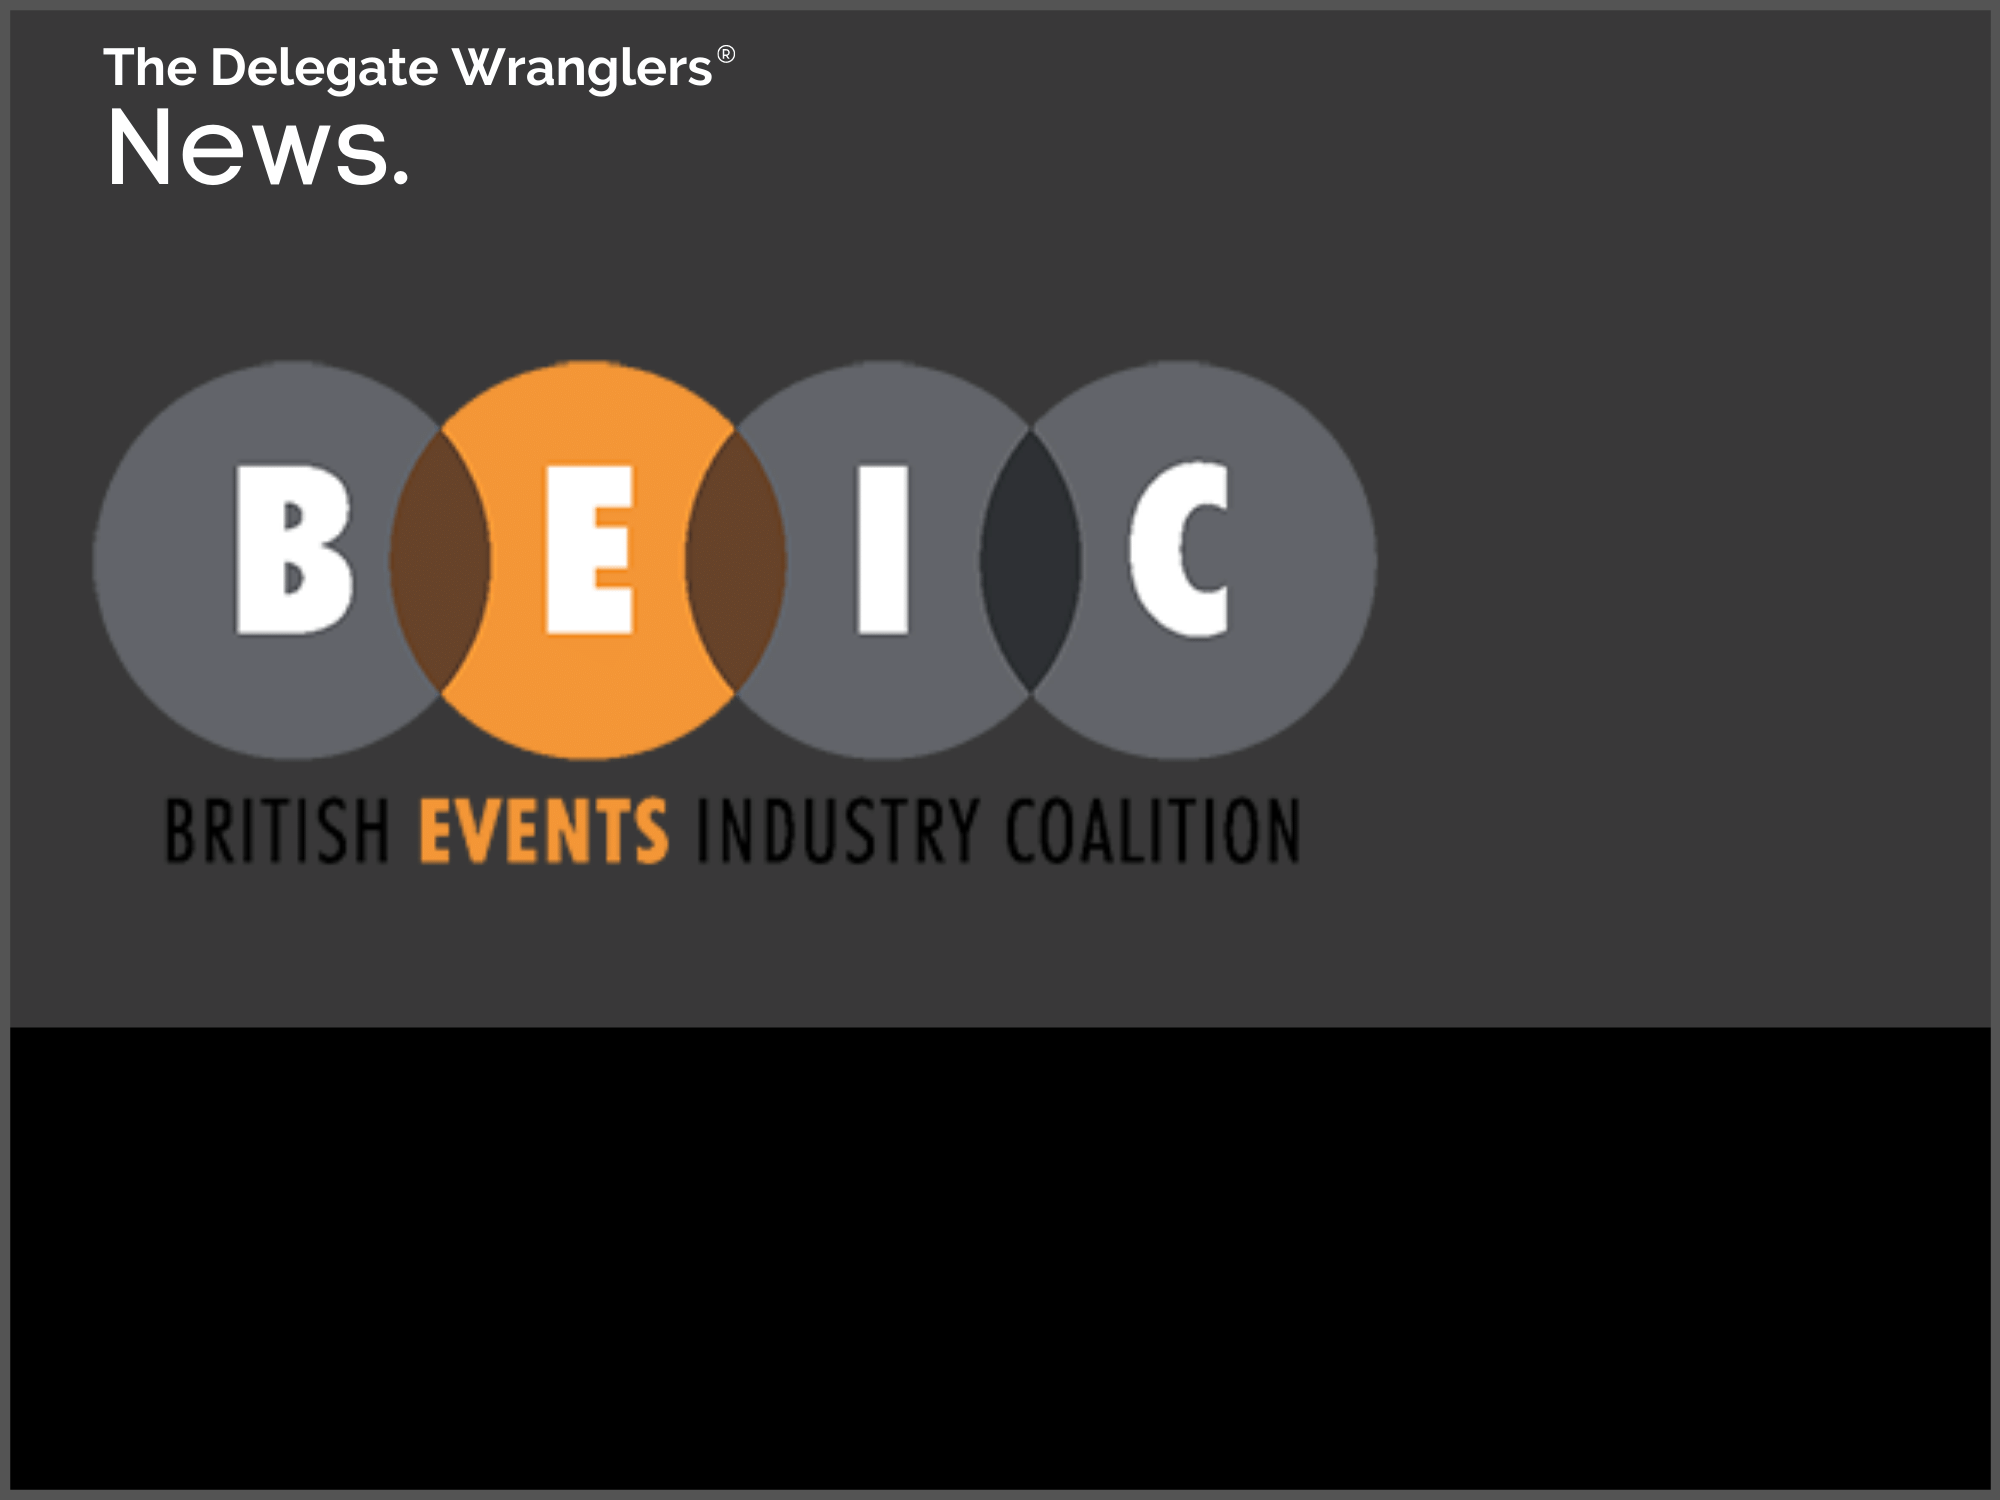 The BEIC calls for Government endorsement of a plan to keep private events industry professionals working